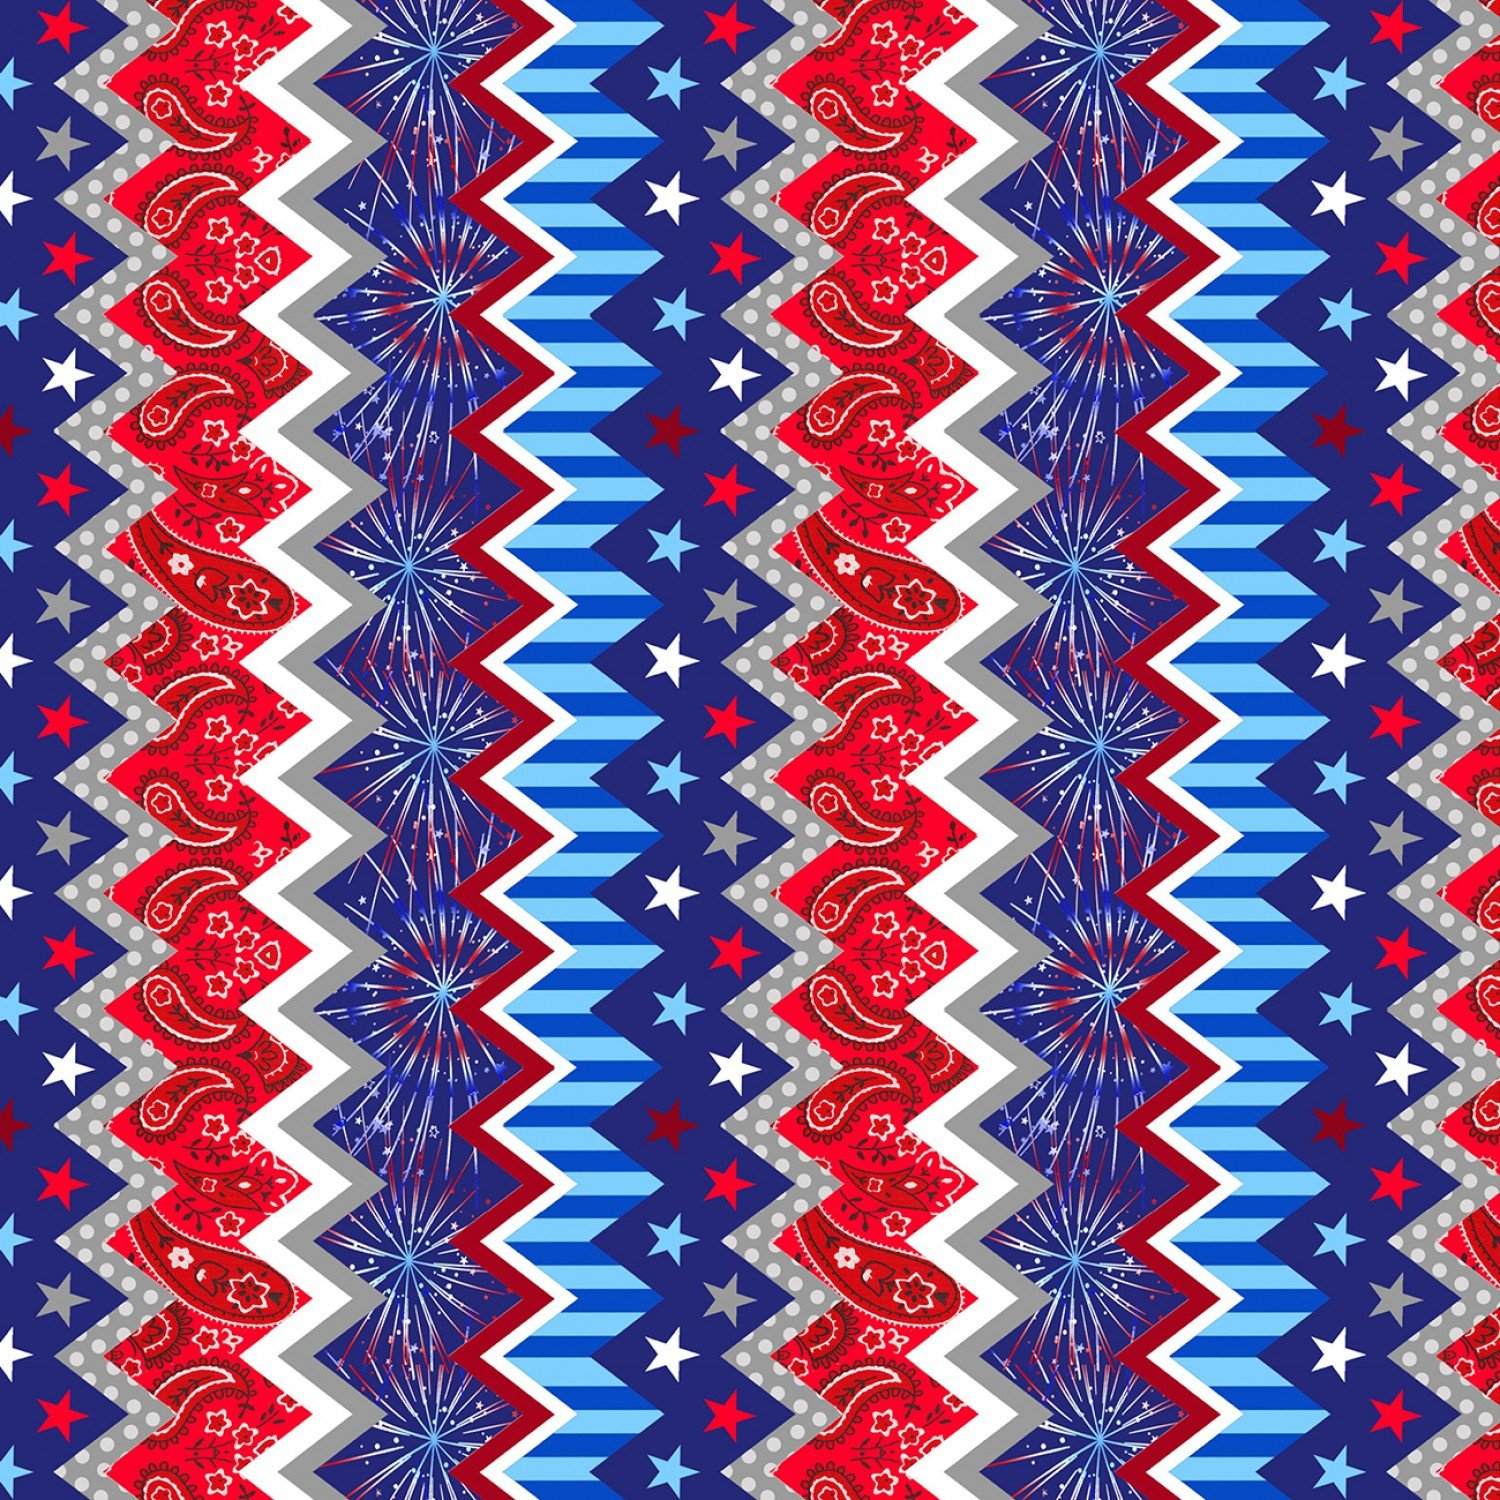 America Home of the Brave 4624-87 Patriotic Chevron Stripe